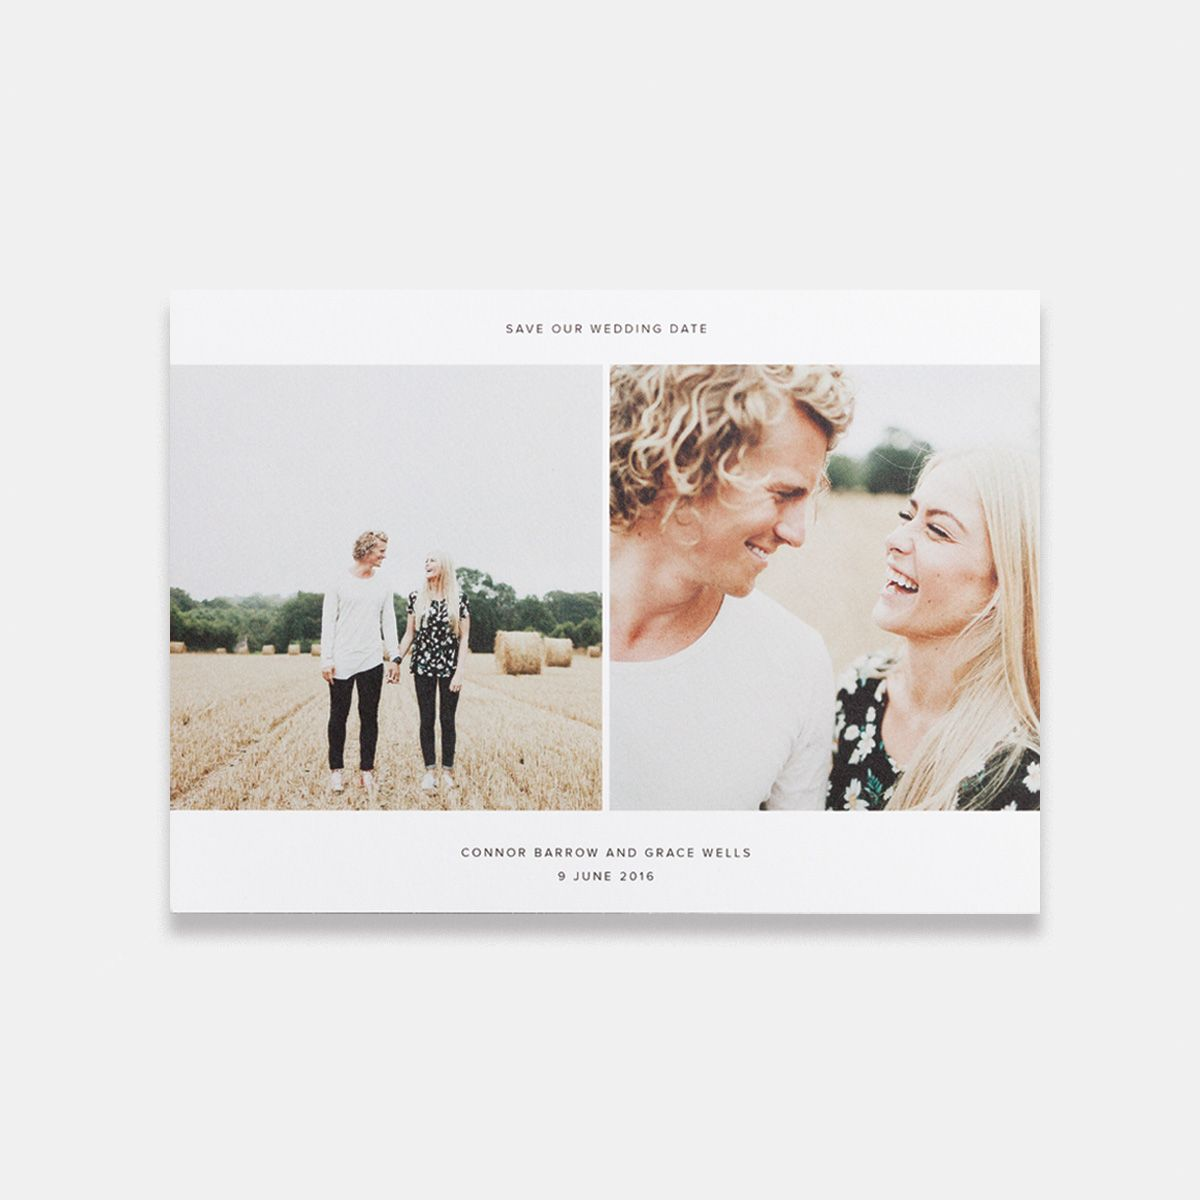 Wedding Save The Dates.Save Our Wedding Date Card